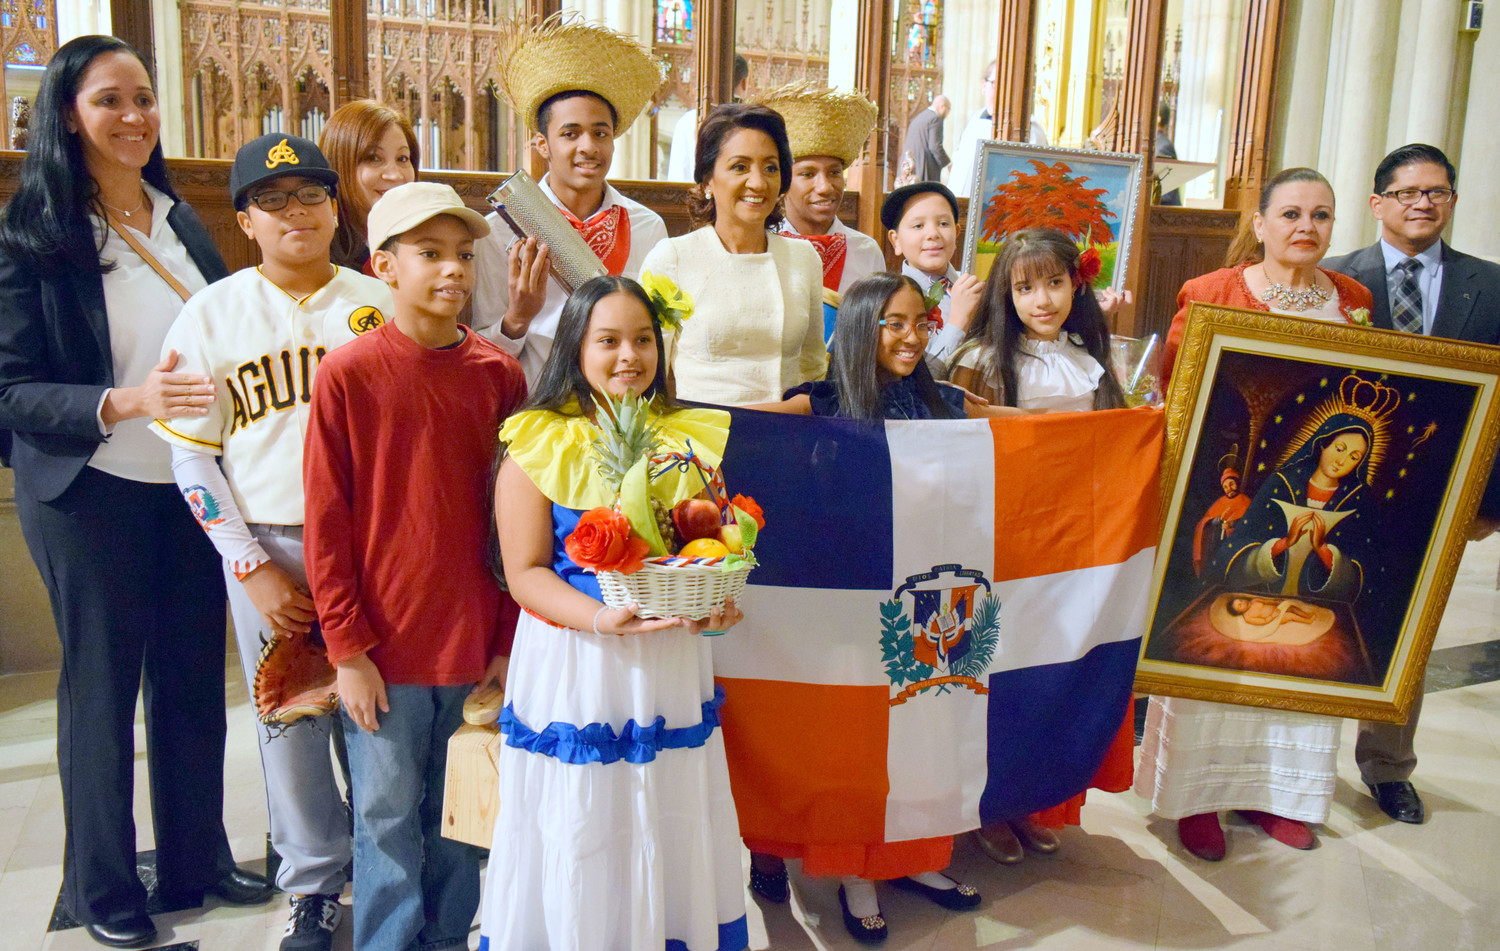 Candida Montilla de Medina, first lady of the Dominican Republic, poses with gift bearers and the image of Our Lady of Altagracia at a Mass at St. Patrick's Cathedral Jan. 14. The Mass was in honor of Our Lady of Altagracia, the protectress of the Dominican Republic.